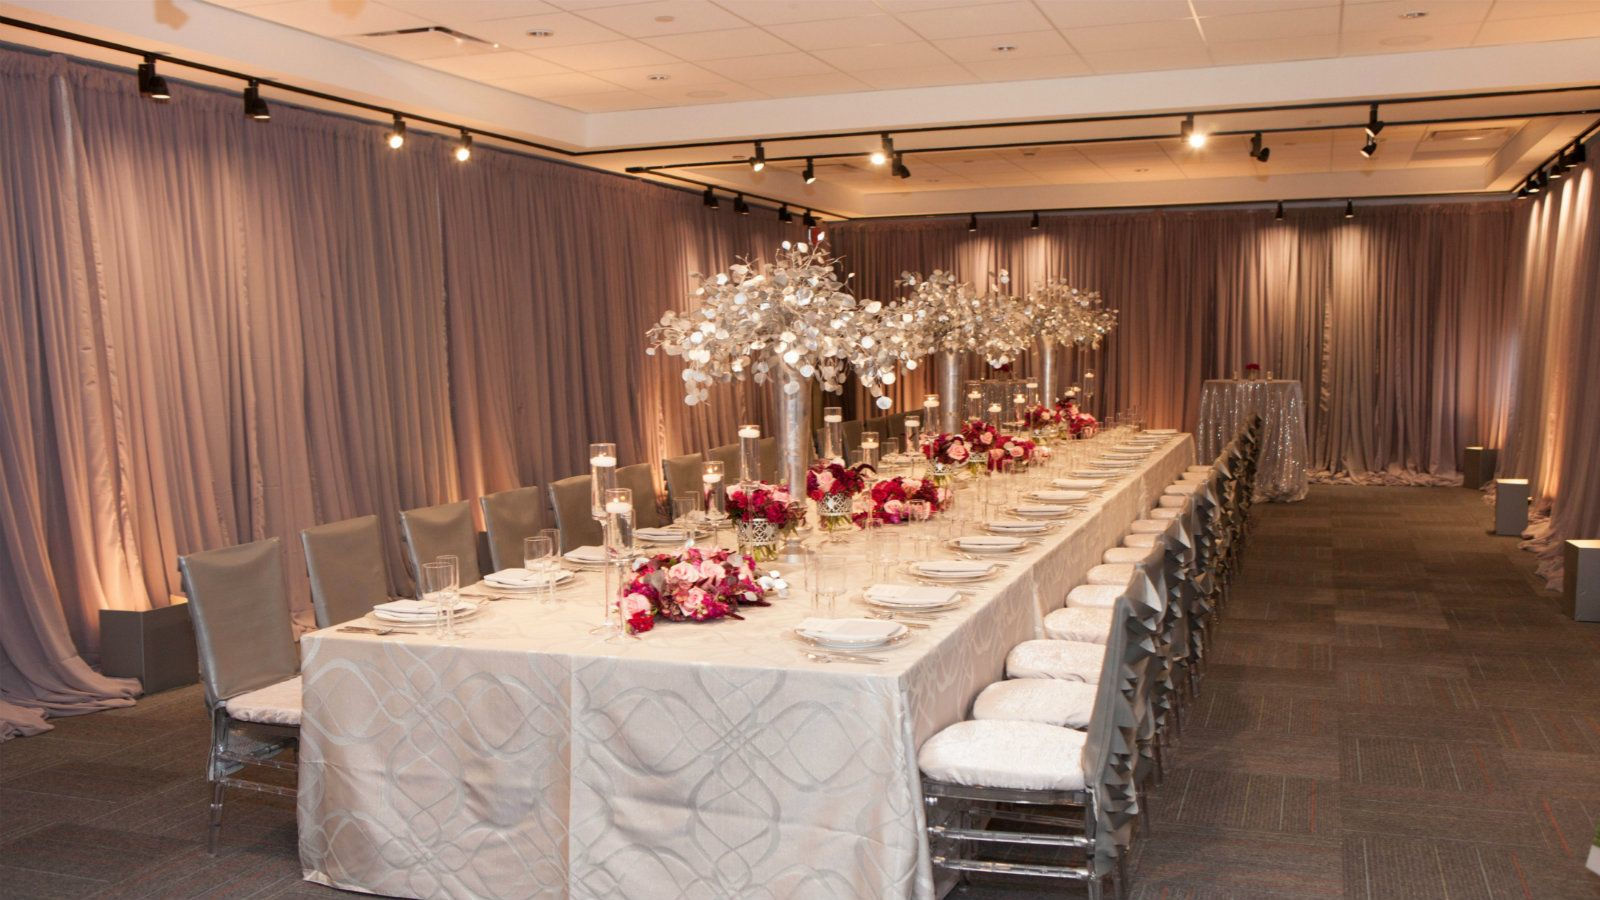 San Jose Wedding Venues - Brunch